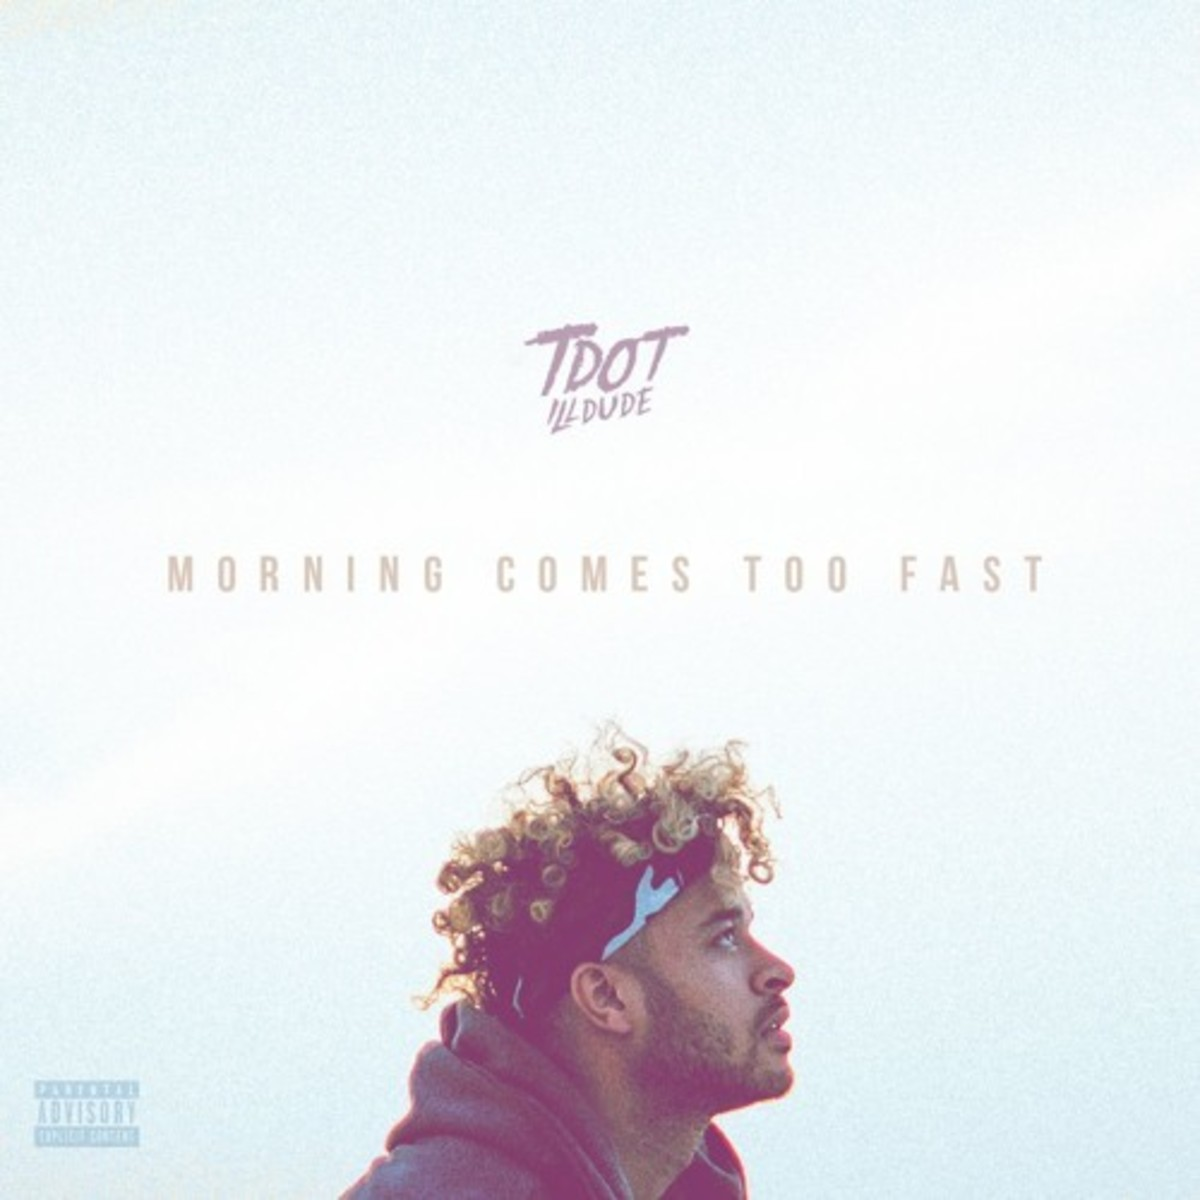 tdot-illdude-morning-comes-too-fast.jpg